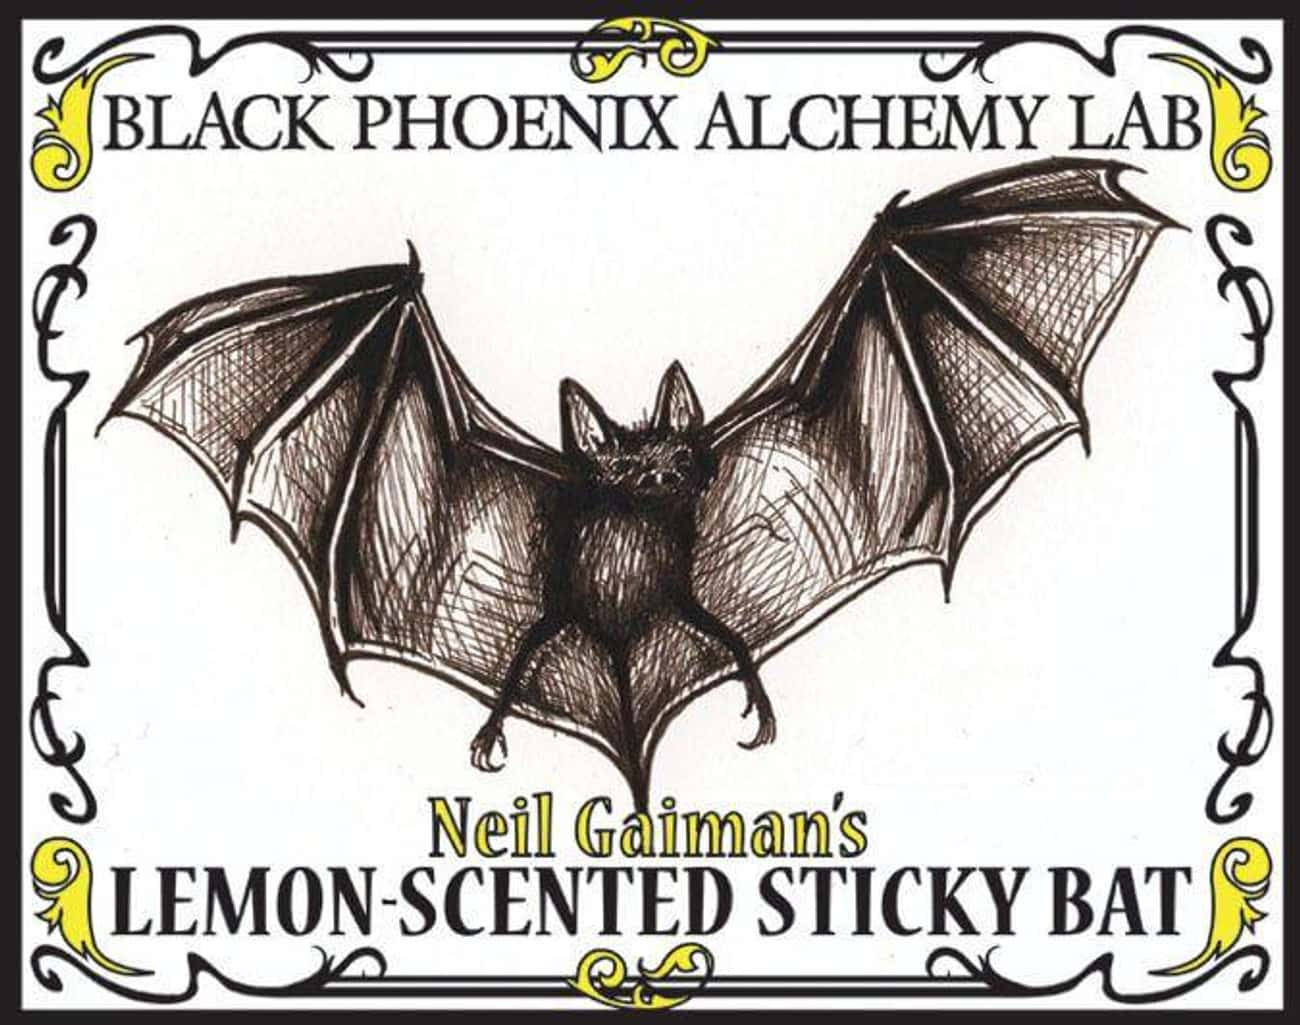 Neil Gaiman - Lemon-Scented St is listed (or ranked) 1 on the list Celebrities You Never Knew Had A Fragrance